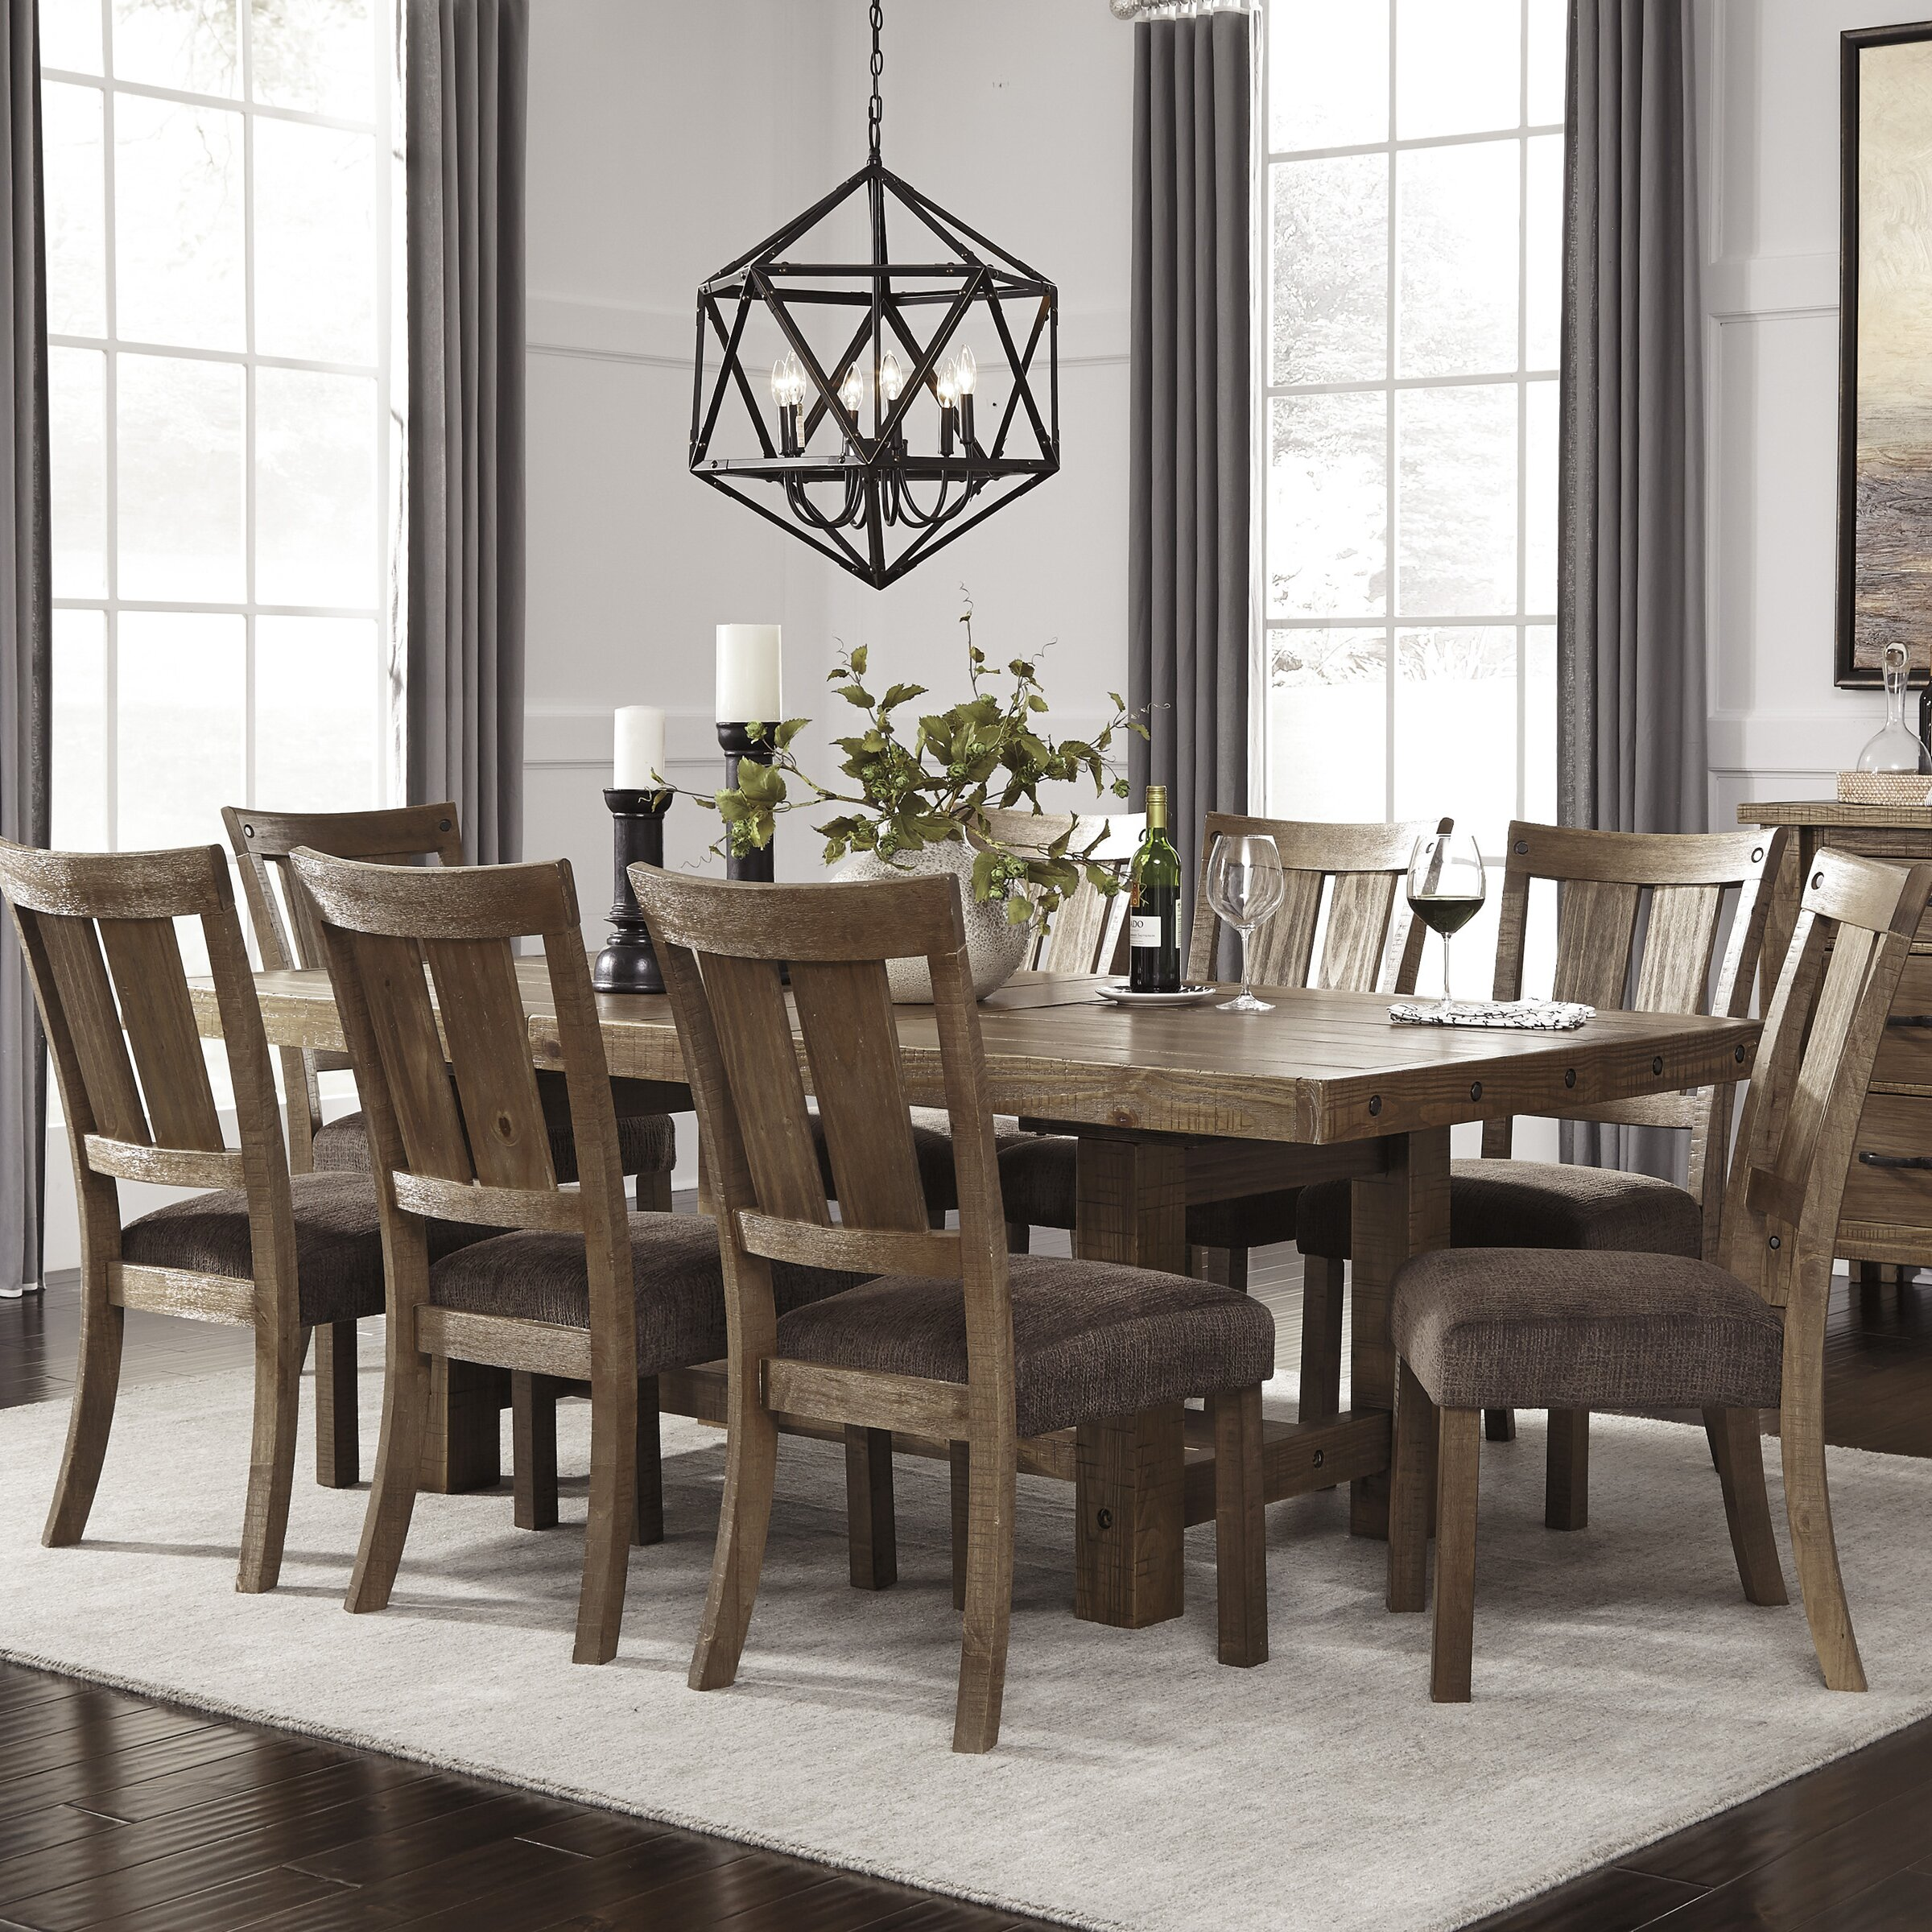 Solid Wood Bedroom Furniture Made In Usa Made In The Usa Kitchen Dining Room Sets Youll Love Wayfair